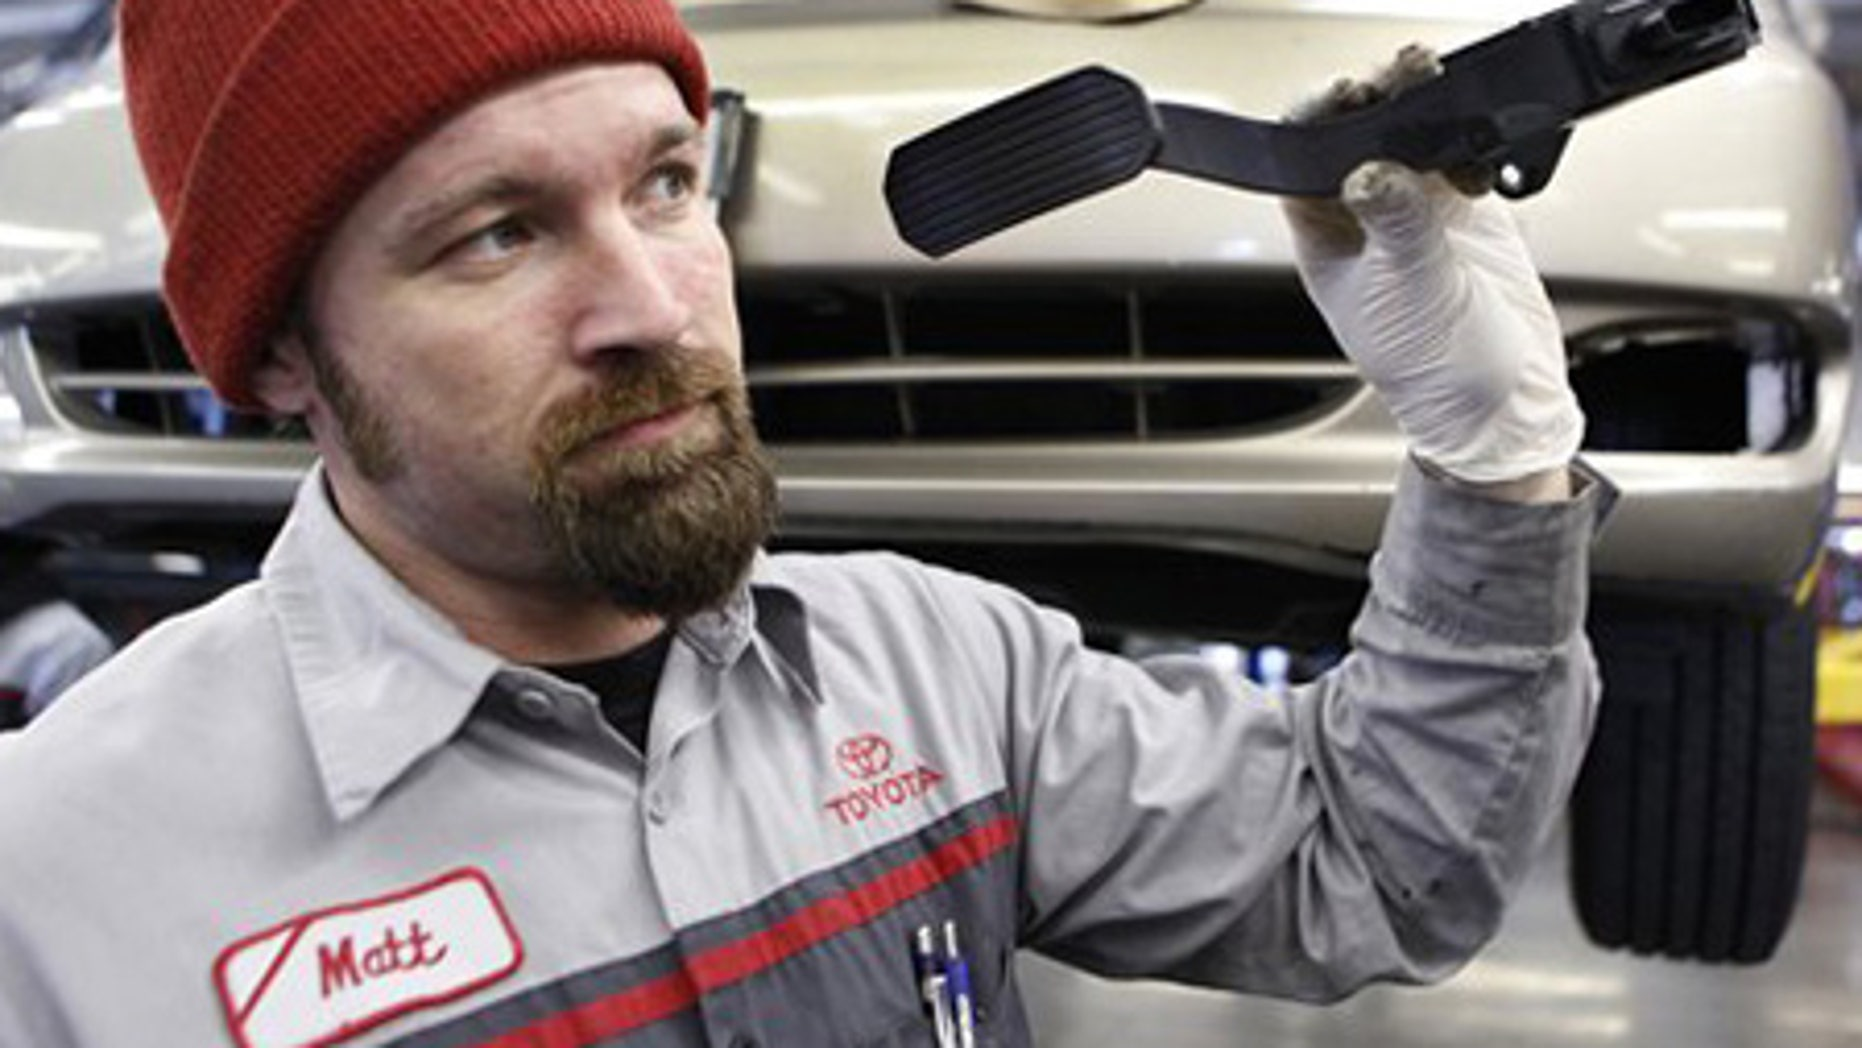 Feb. 3: Mechanic Matthew Lee holds a recalled Toyota gas pedal at a Toyota dealership in Palo Alto, Calif.